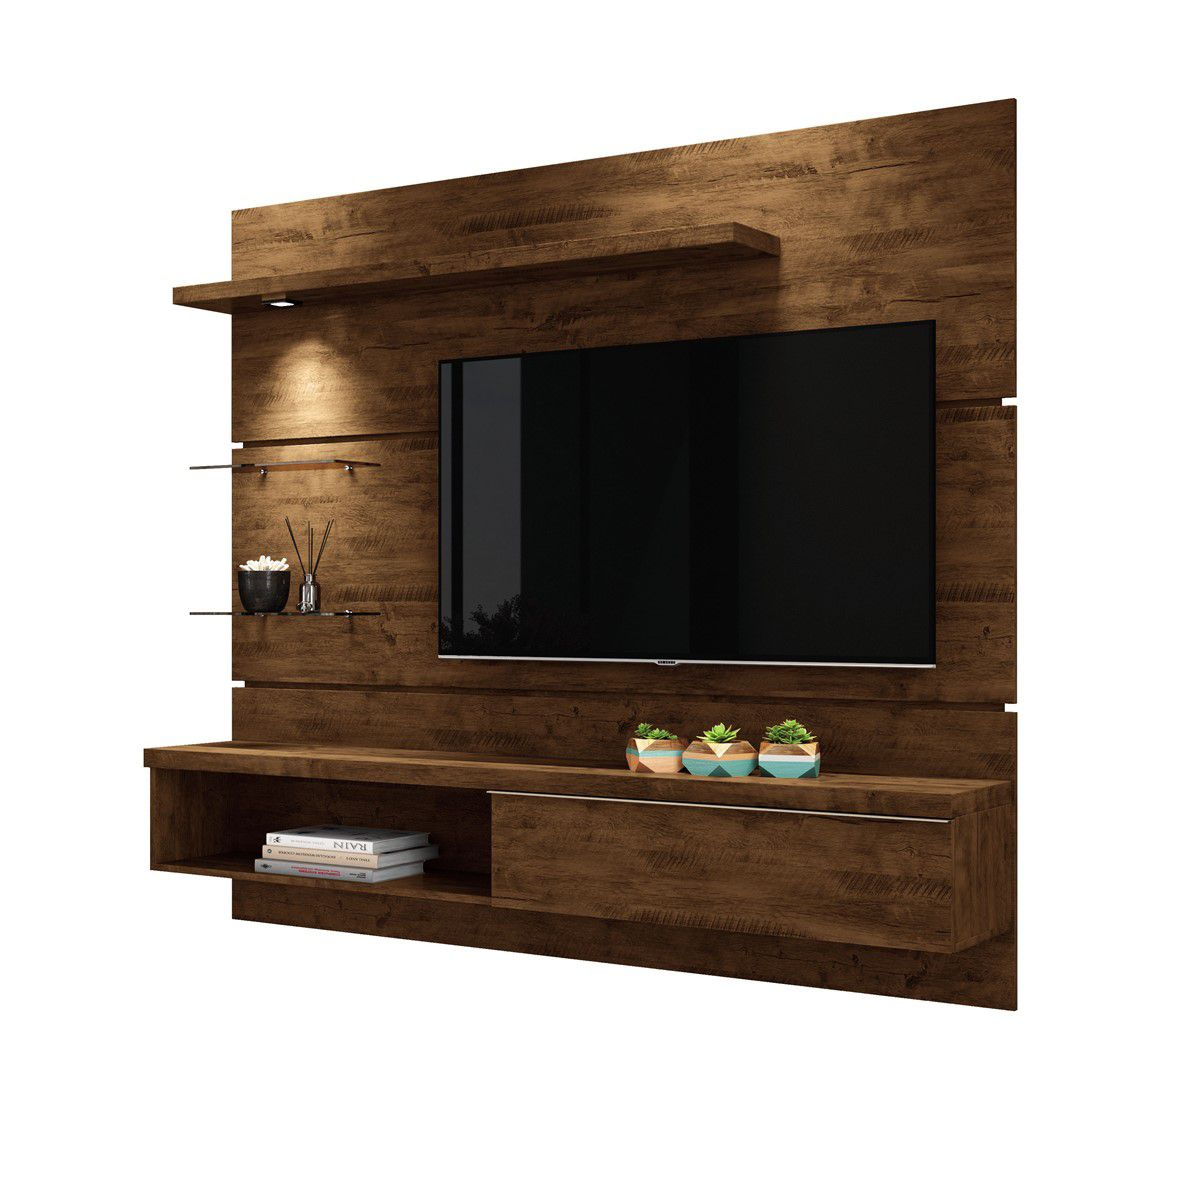 "Painel p/ TV 55"" Home Suspenso Ores 1.8 HB Móveis Canyon"